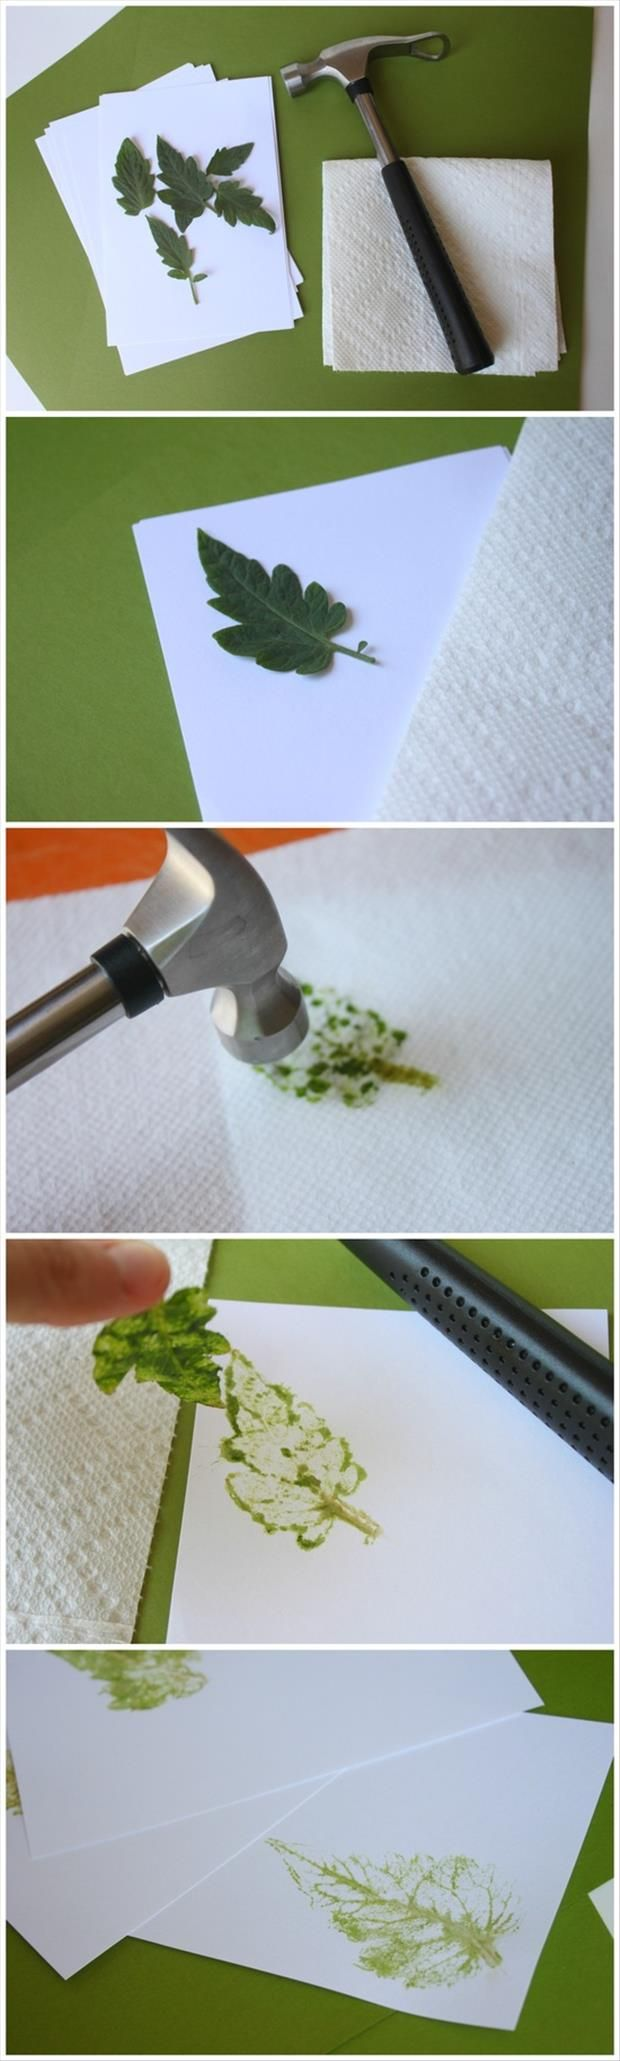 how to make a leaf print craft ideas